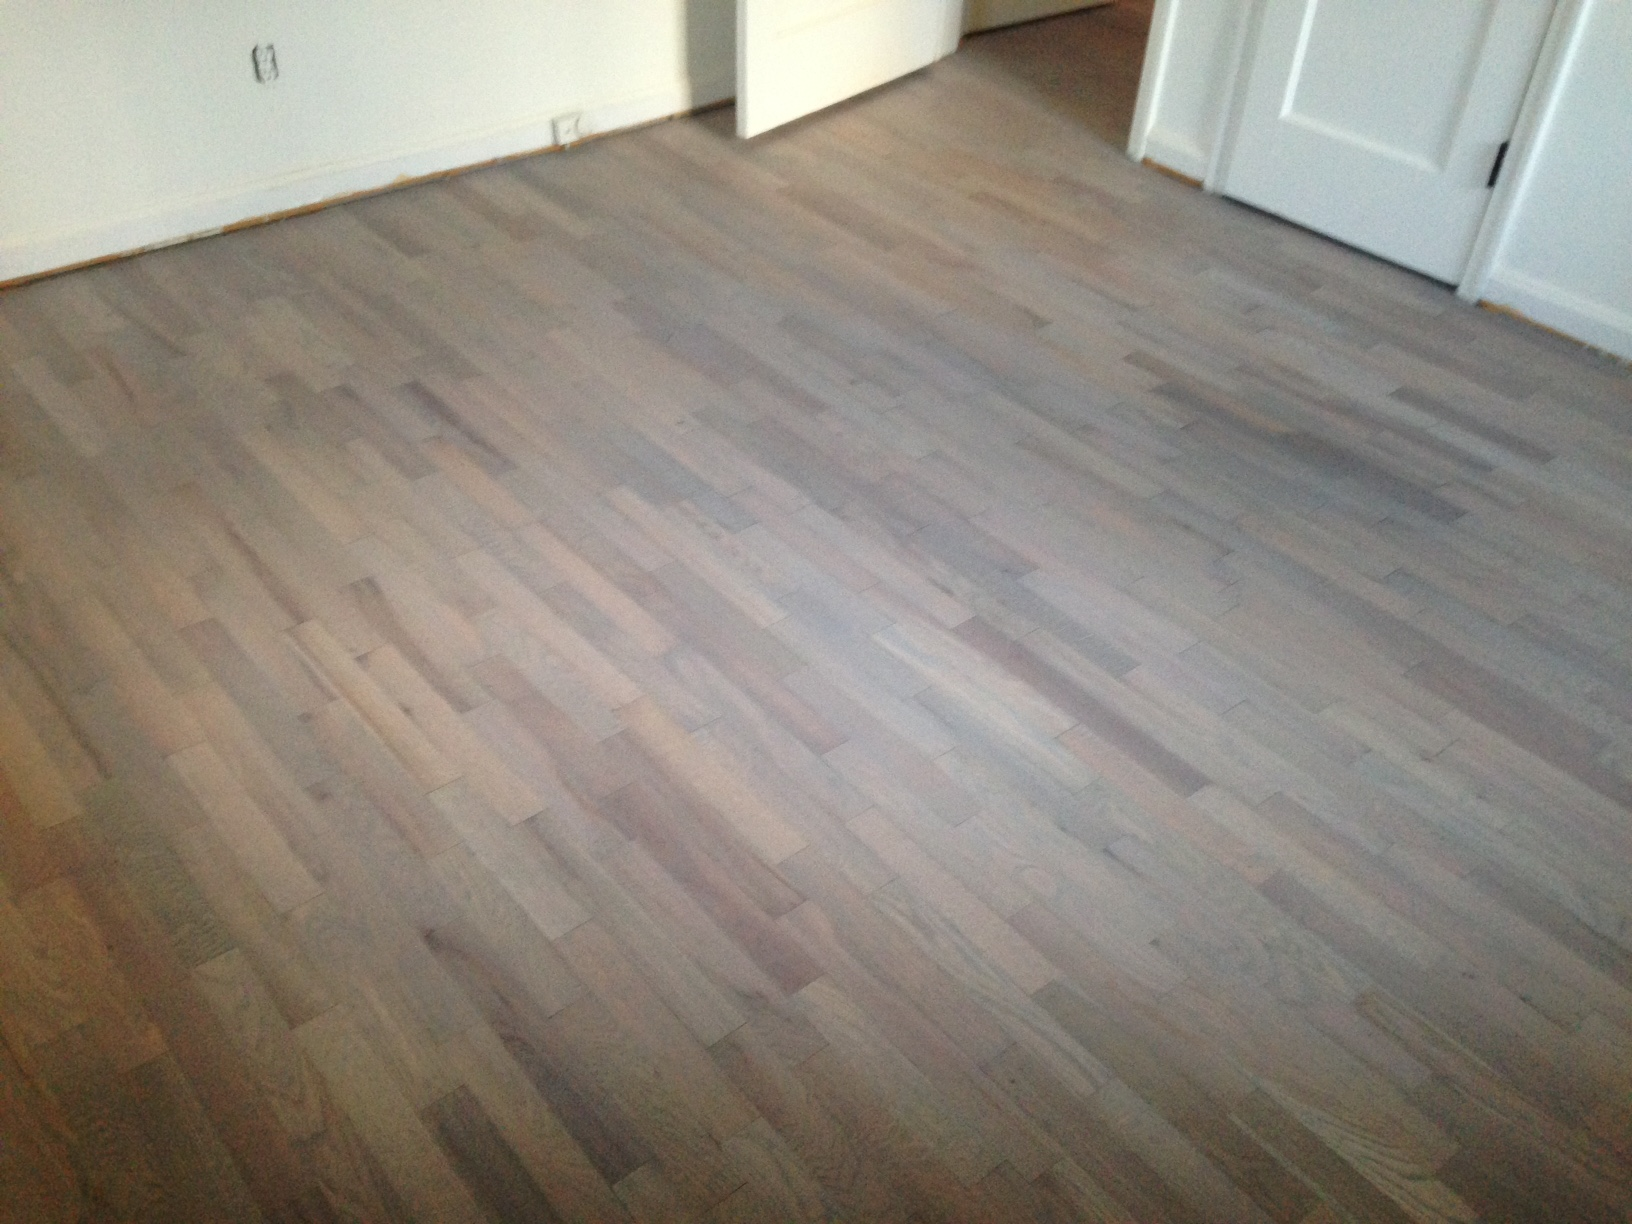 Refinishing wood floors for a beach house look dan 39 s for At floor or on floor